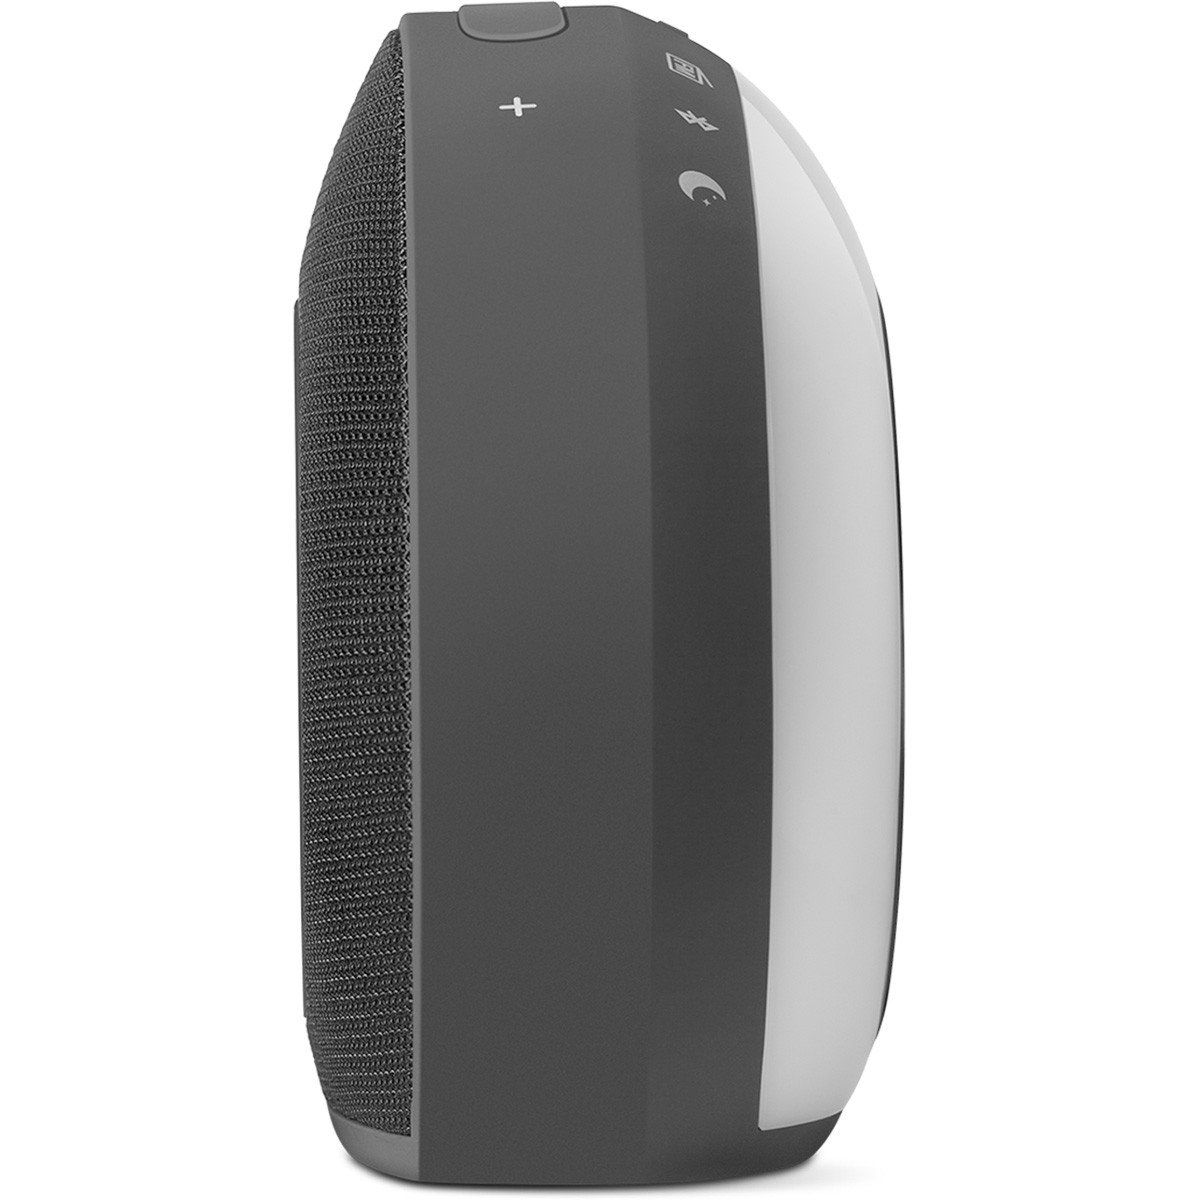 Jbl Horizon Caixa de Som Radio-Relógio Multisensor Led Bluetooth